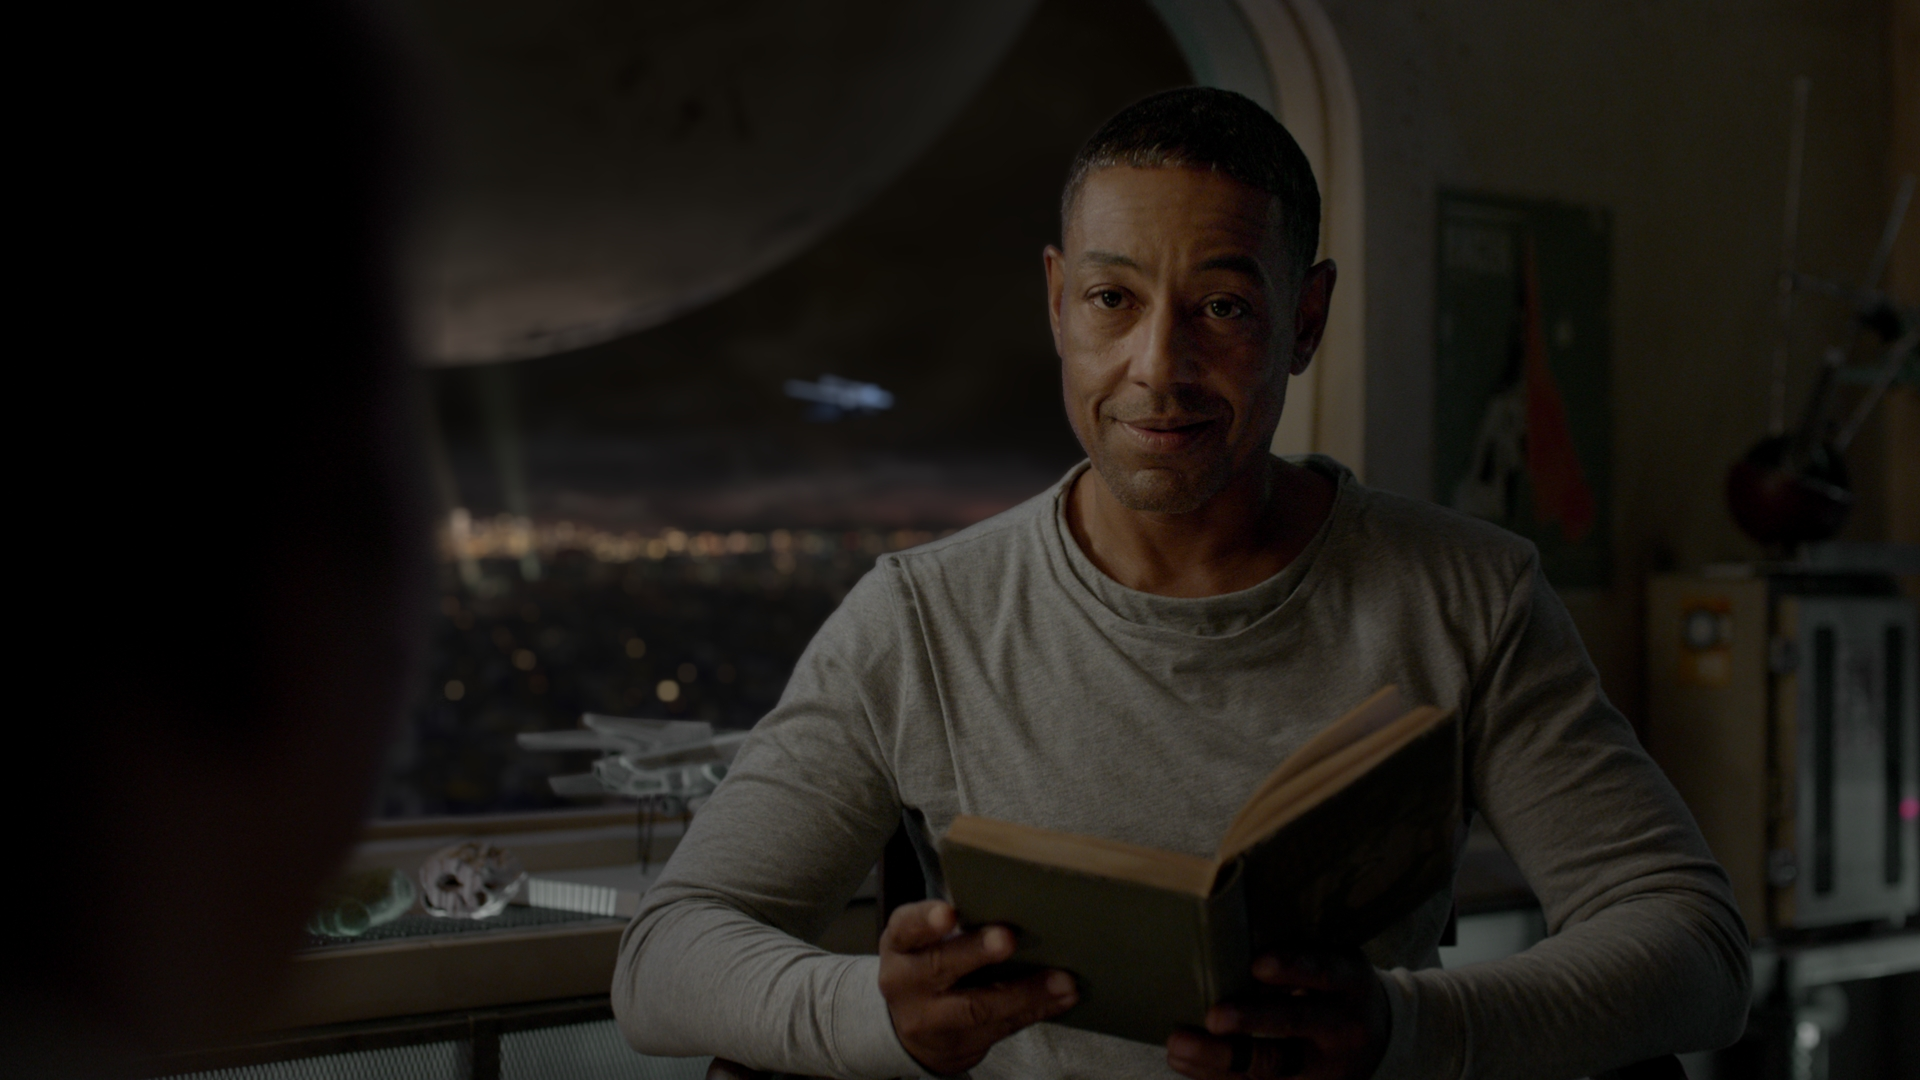 destiny_law-of-the-jungle_actor-giancarlo-esposito